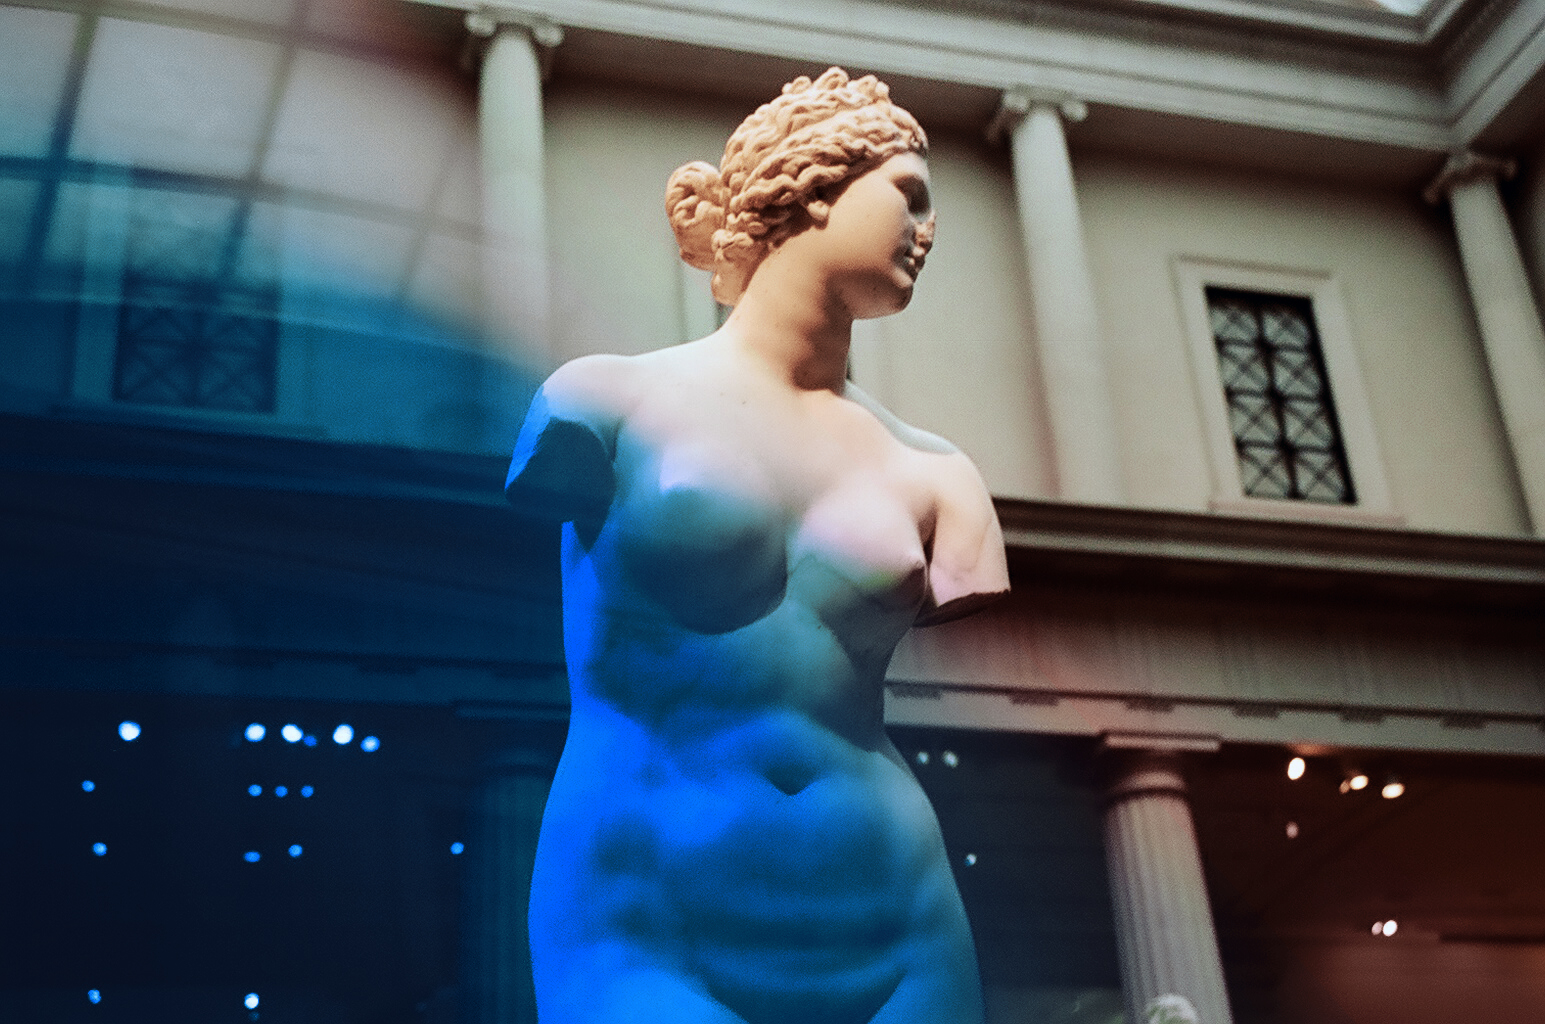 Met_Woman_Statue_Blue.jpg